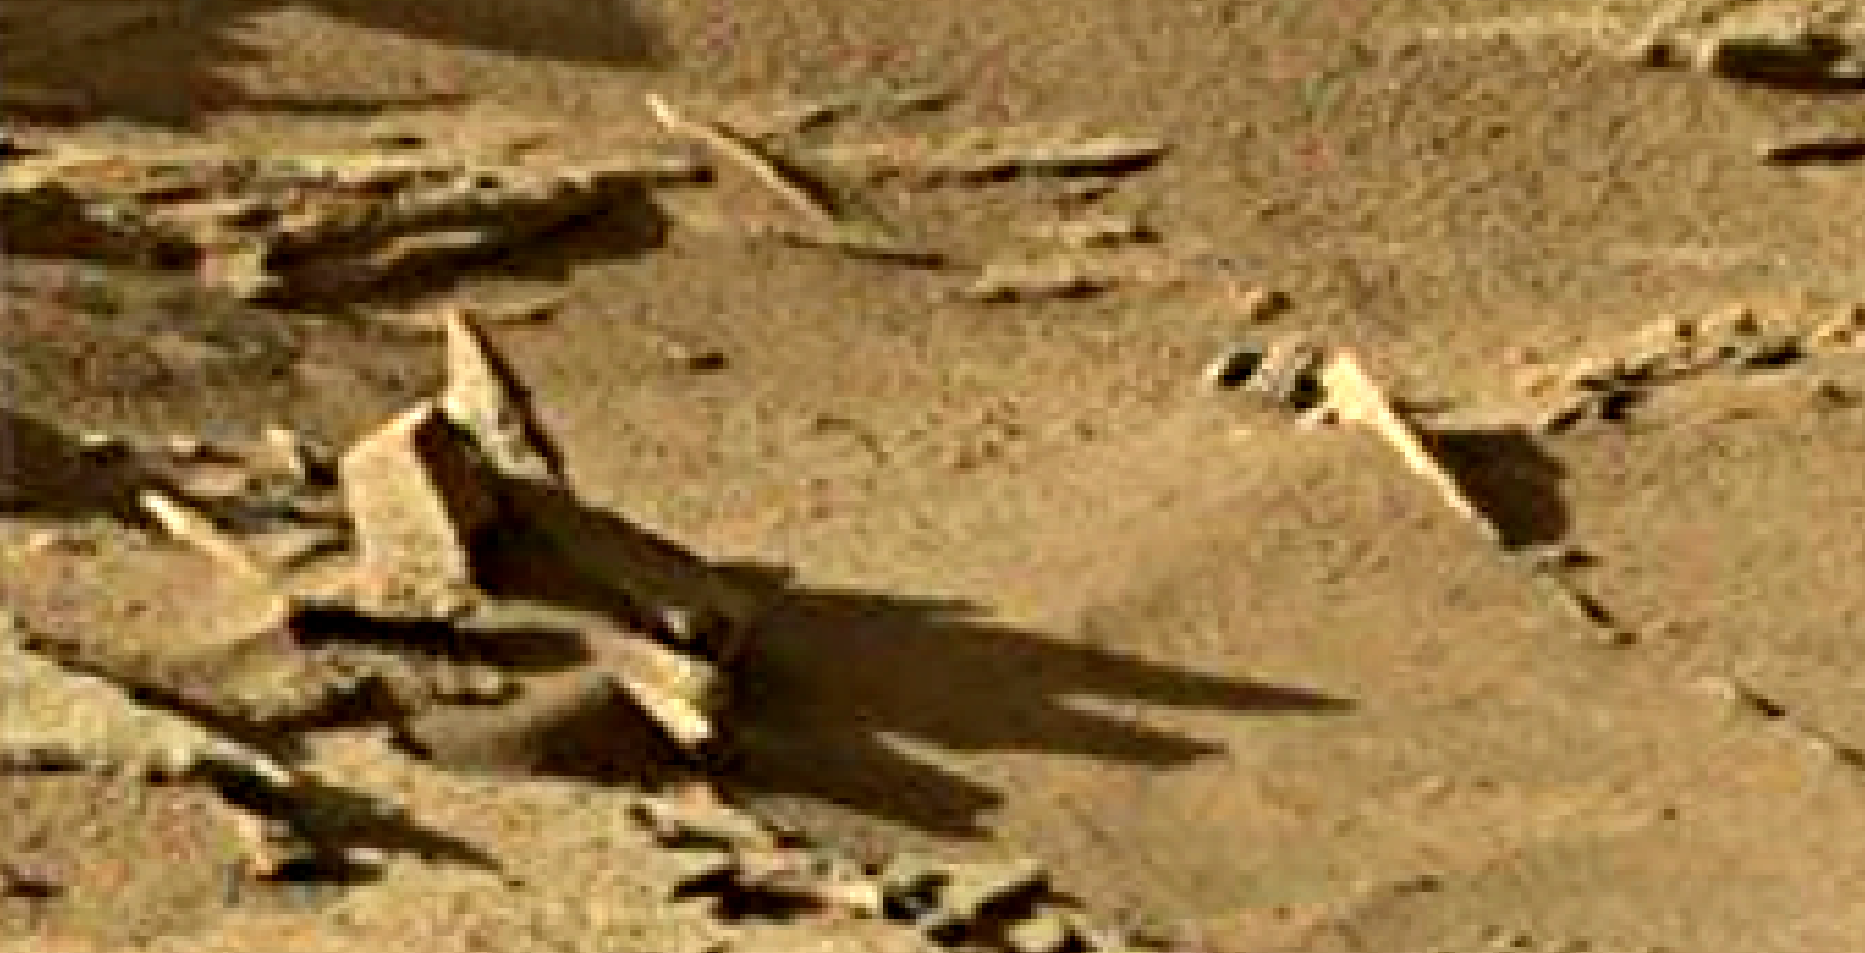 mars sol 1302 anomaly-artifacts 5 was life on mars